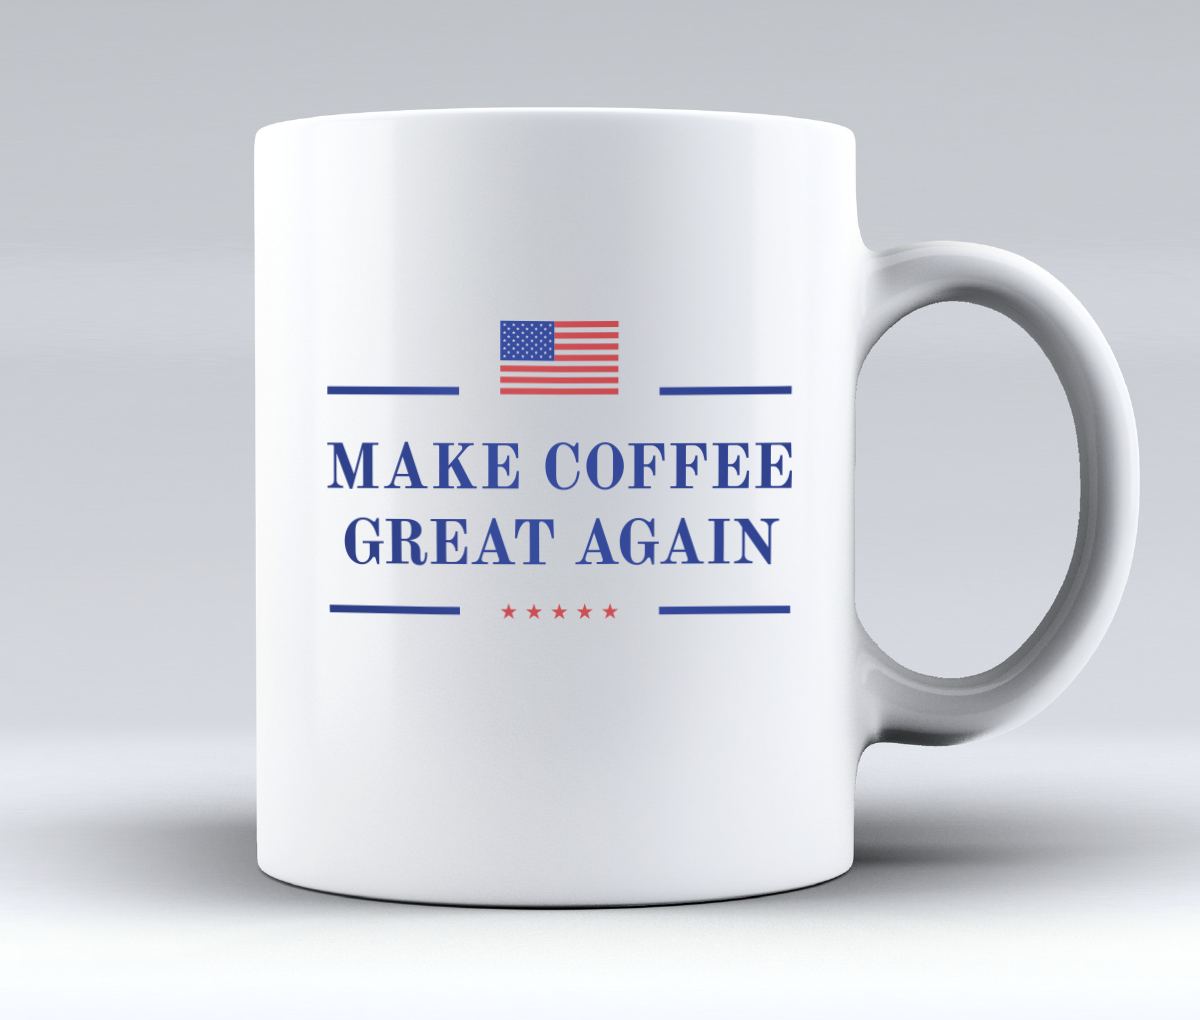 Home » Home Goods » Make Coffee Great Again Mug